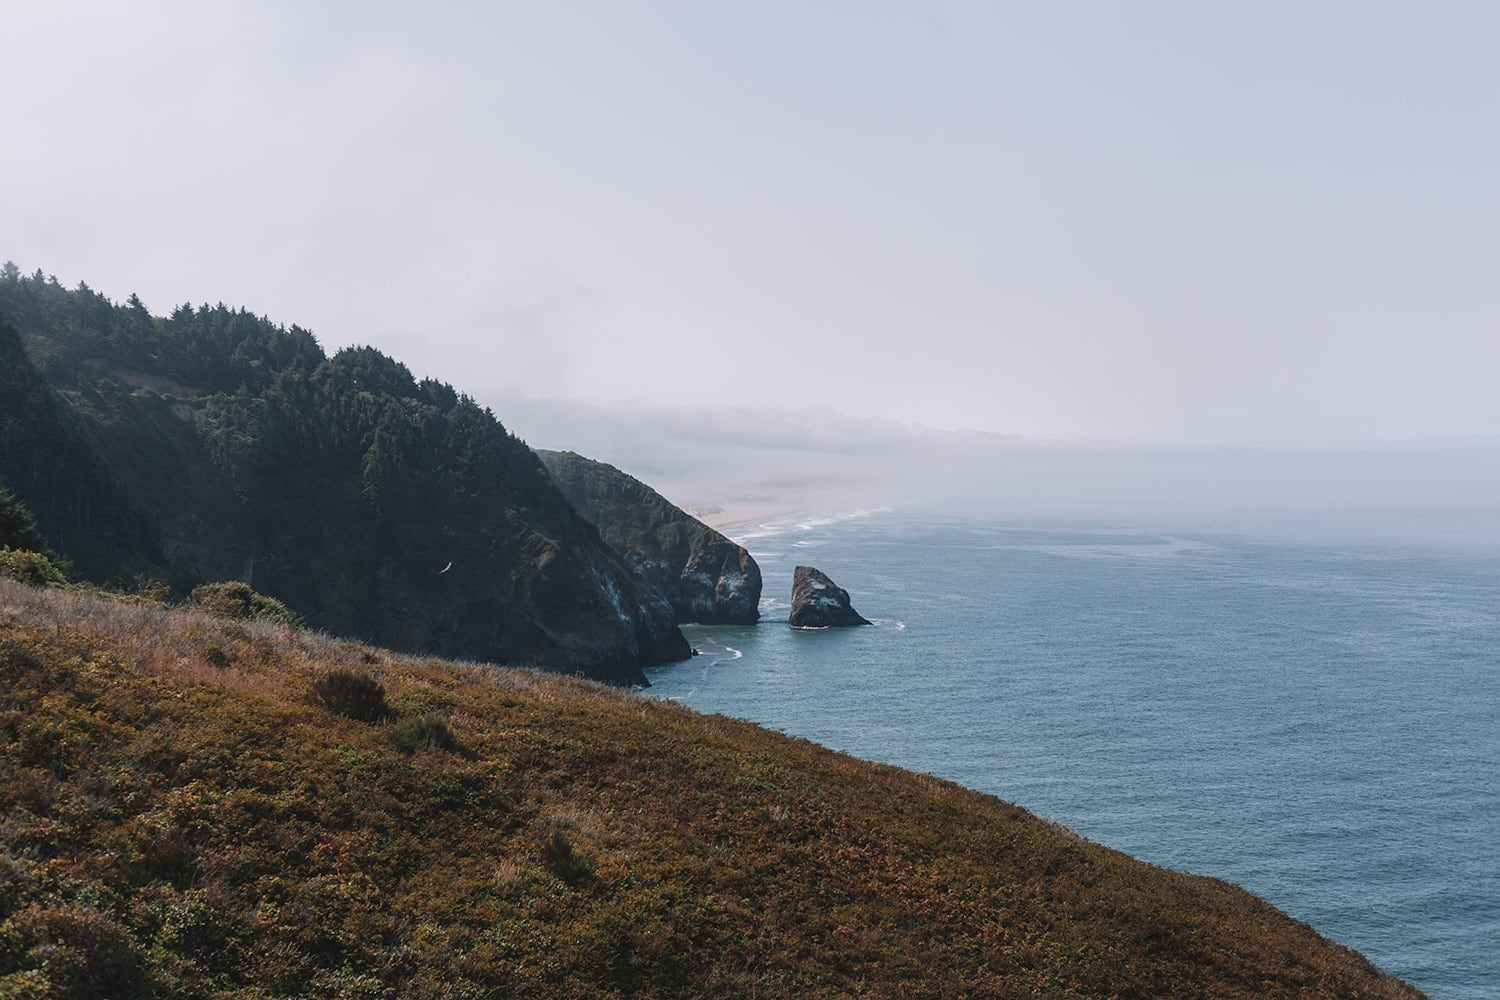 The beautiful Oregon Coast on a road trip through the Pacific Northwest - travel guide by lifestyle blogger Meg O. on the Go